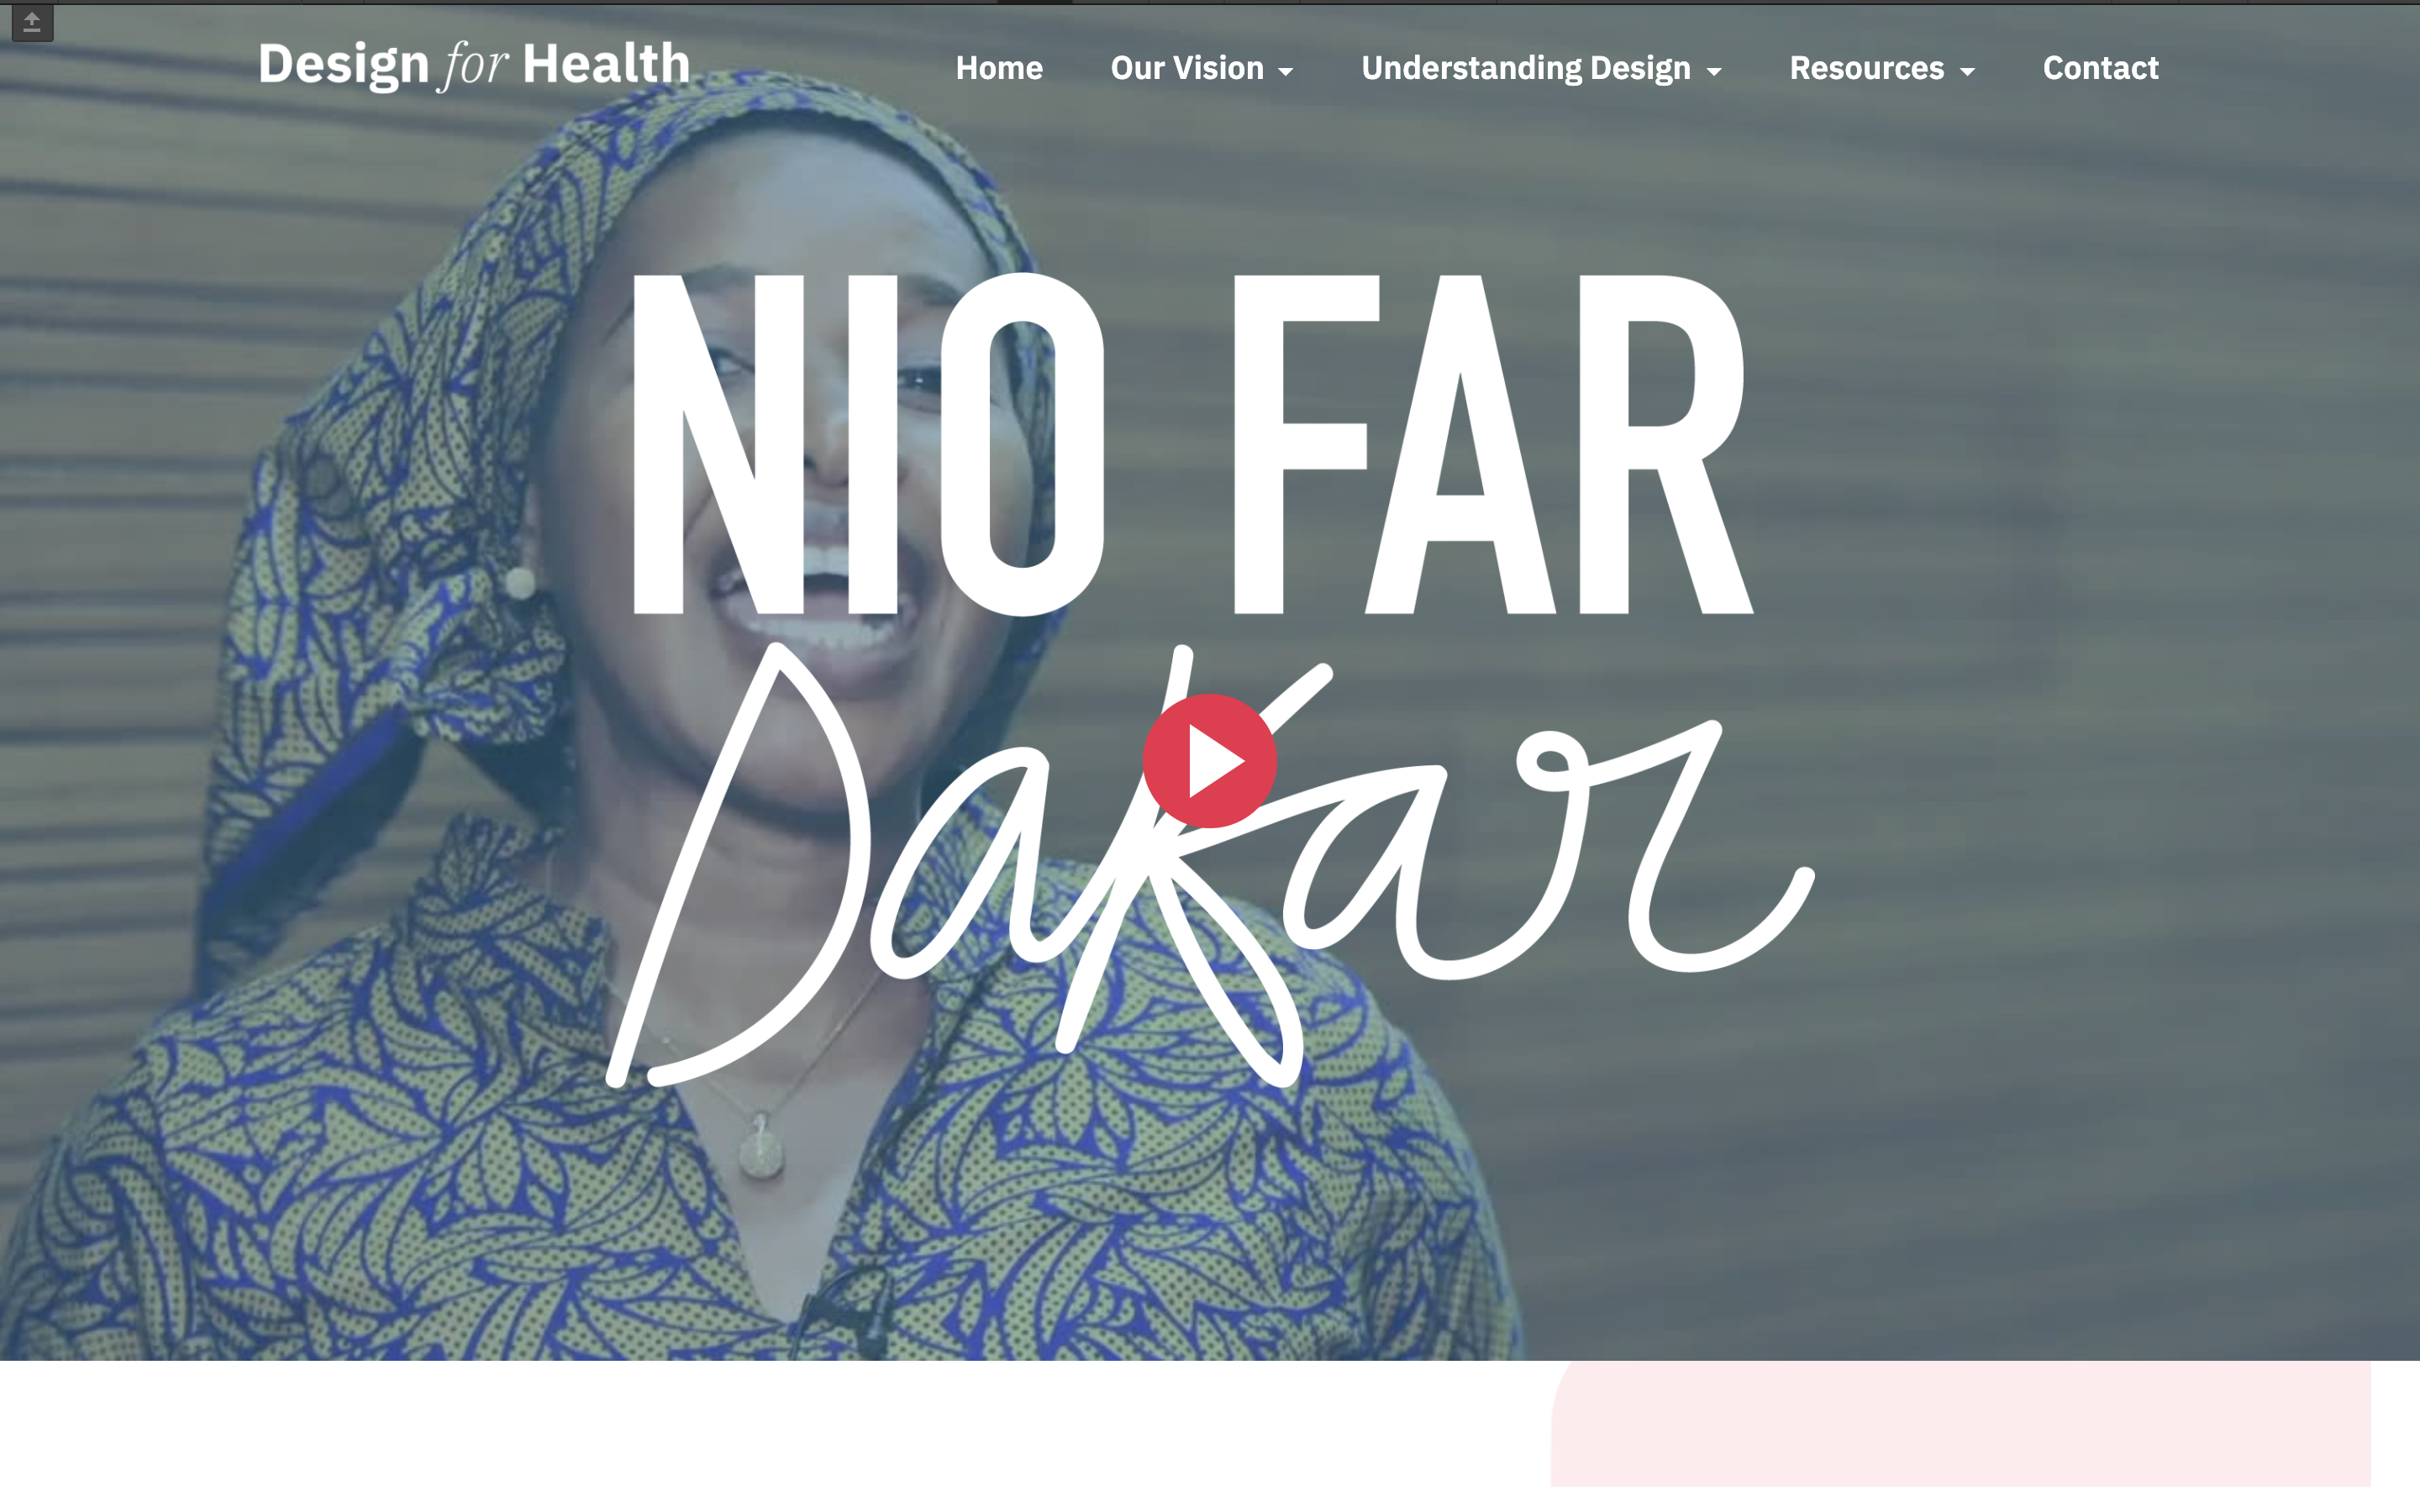 Preview of webpage summarising Nio Far Dakar 2019 conference